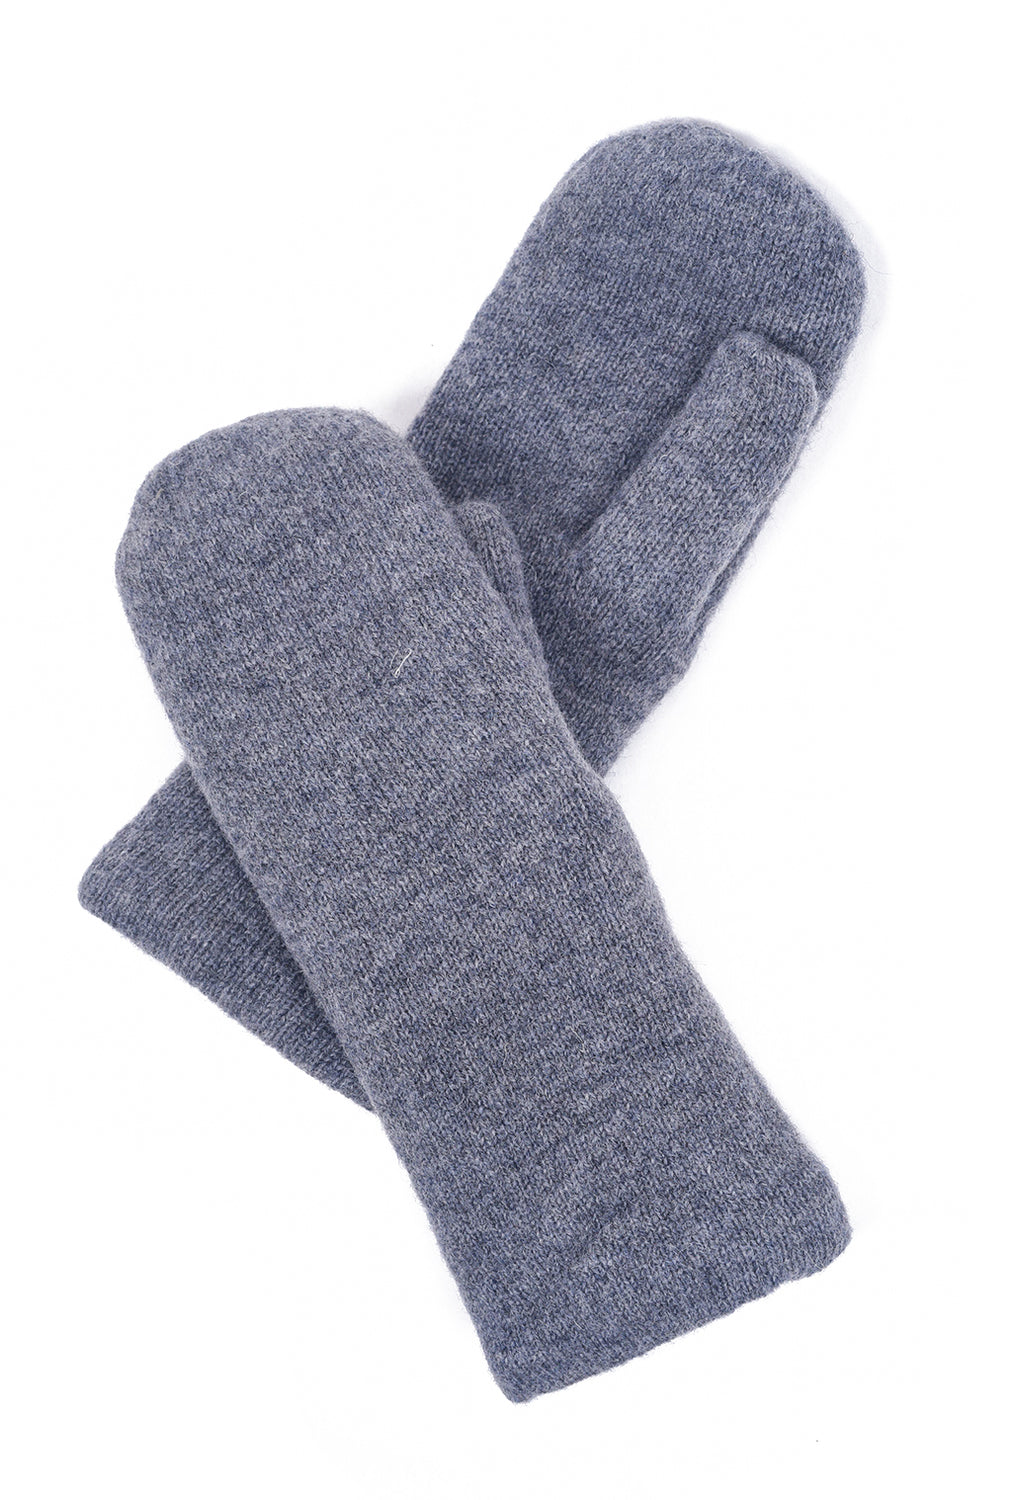 Two Danes Handy Mittens, Charcoal